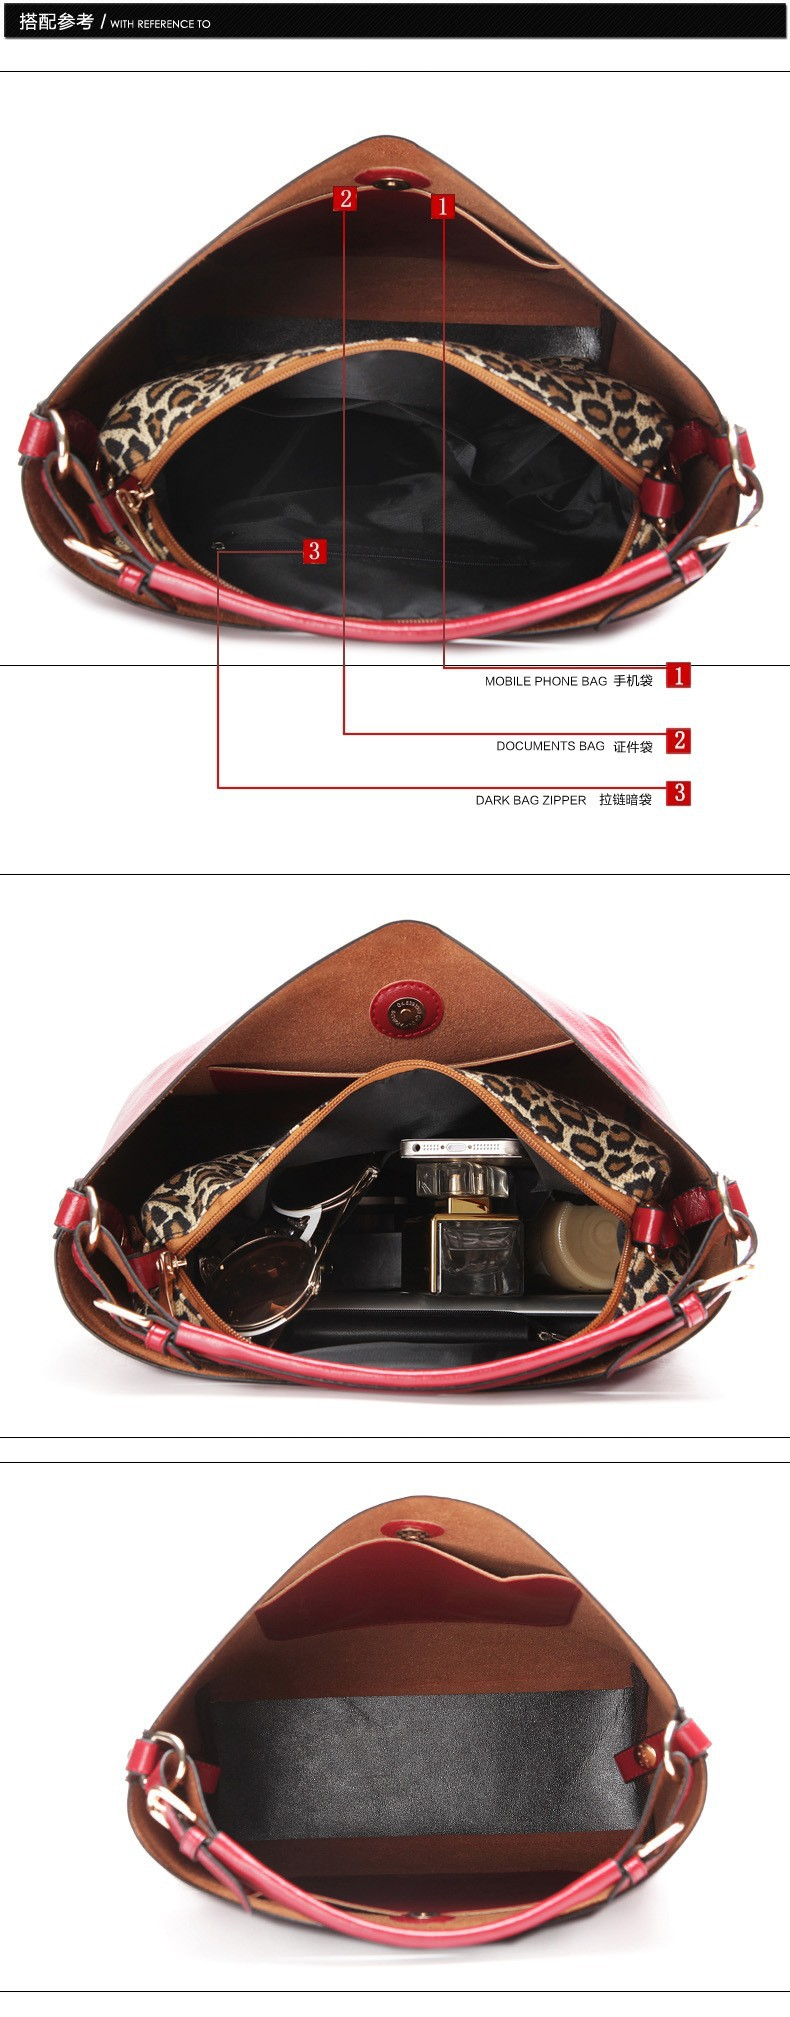 Ladies Composite Handbags Woman Fashion Pu Leather Bags Crossbody Bag For Women Fashion 2015 Designer High Quality Bags BH270 (18)